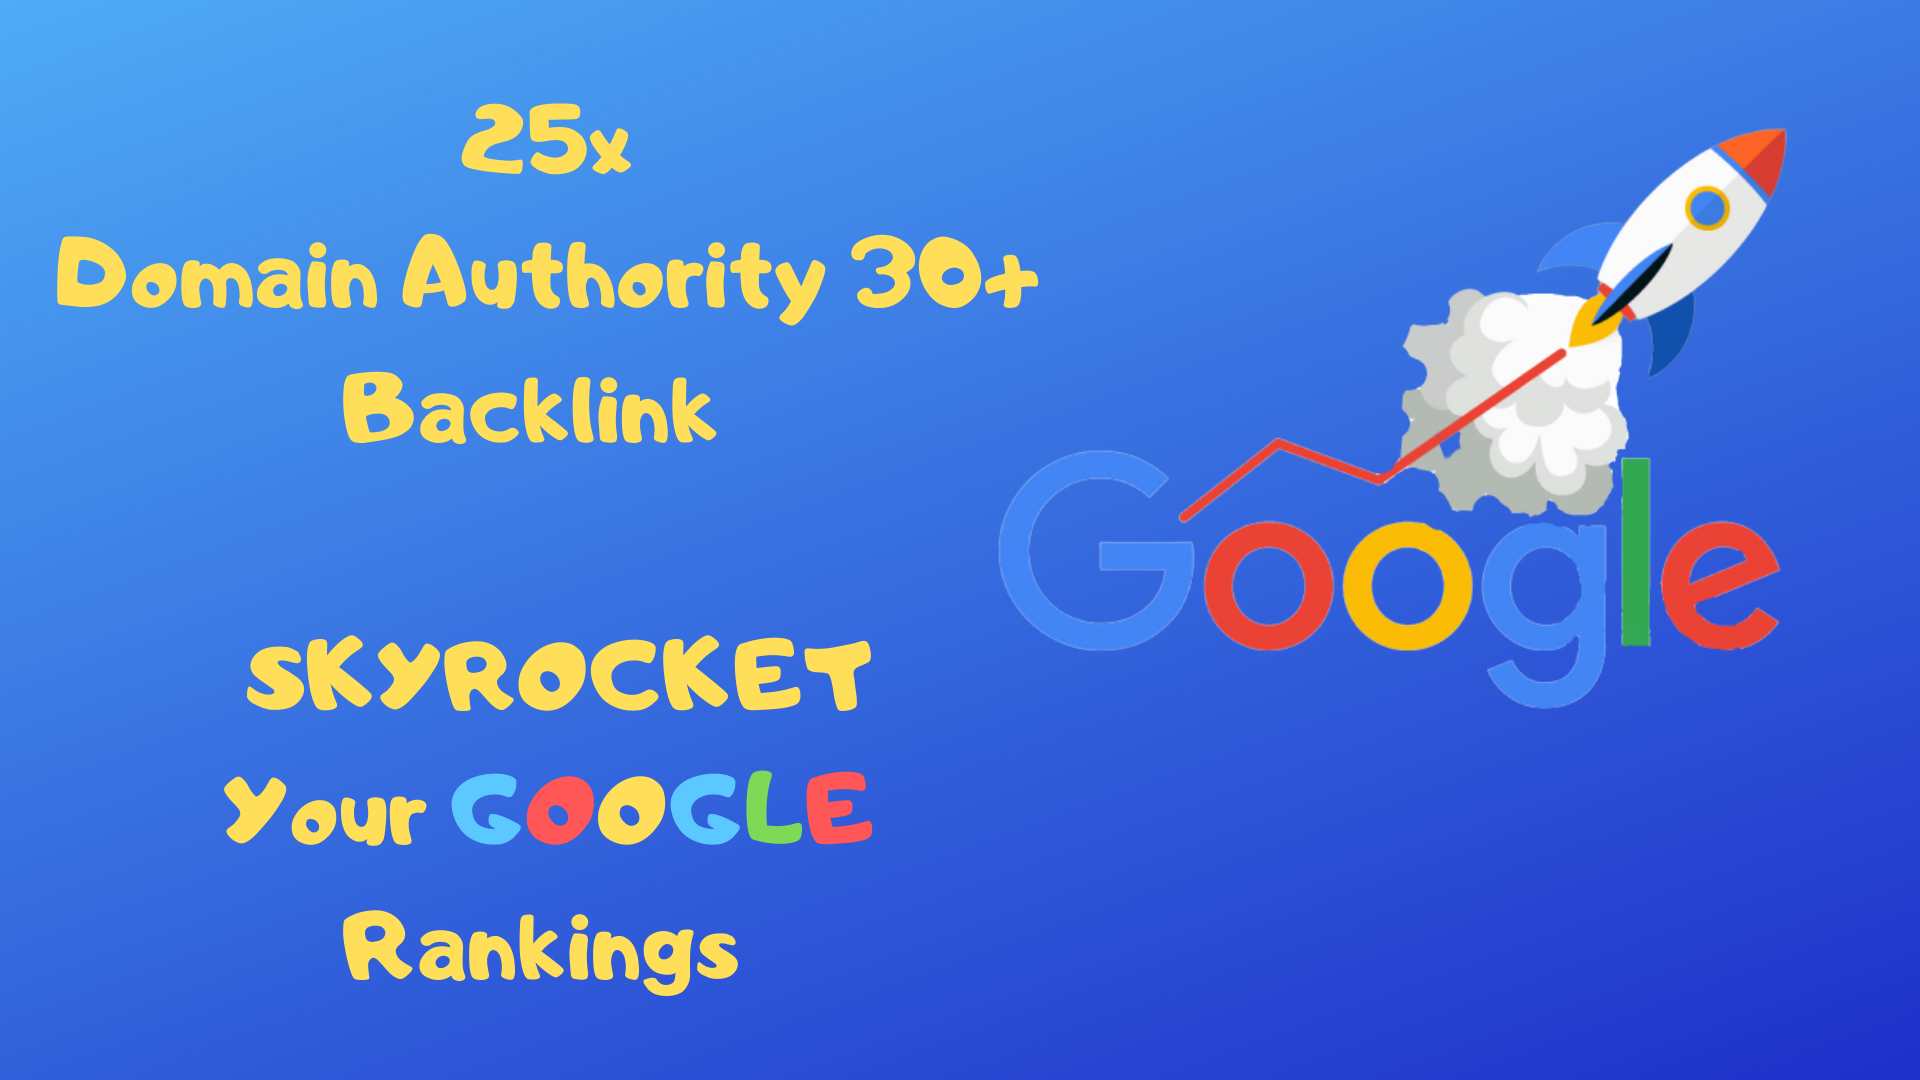 I Will SKYROCKET Your Google Rankings with this Backlink Service